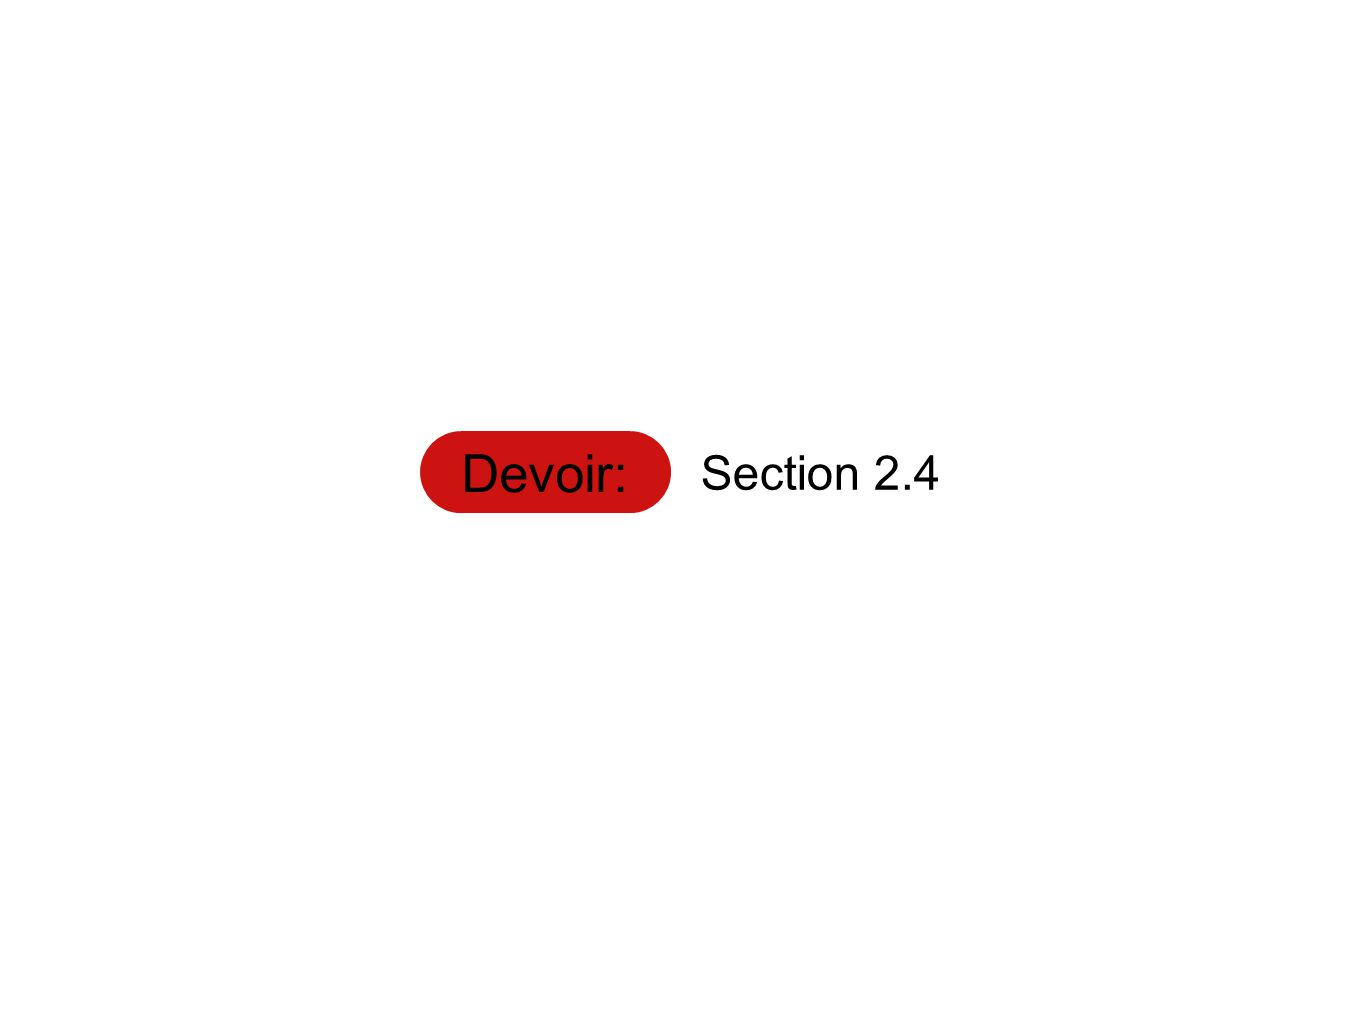 Devoir: Section 2.4